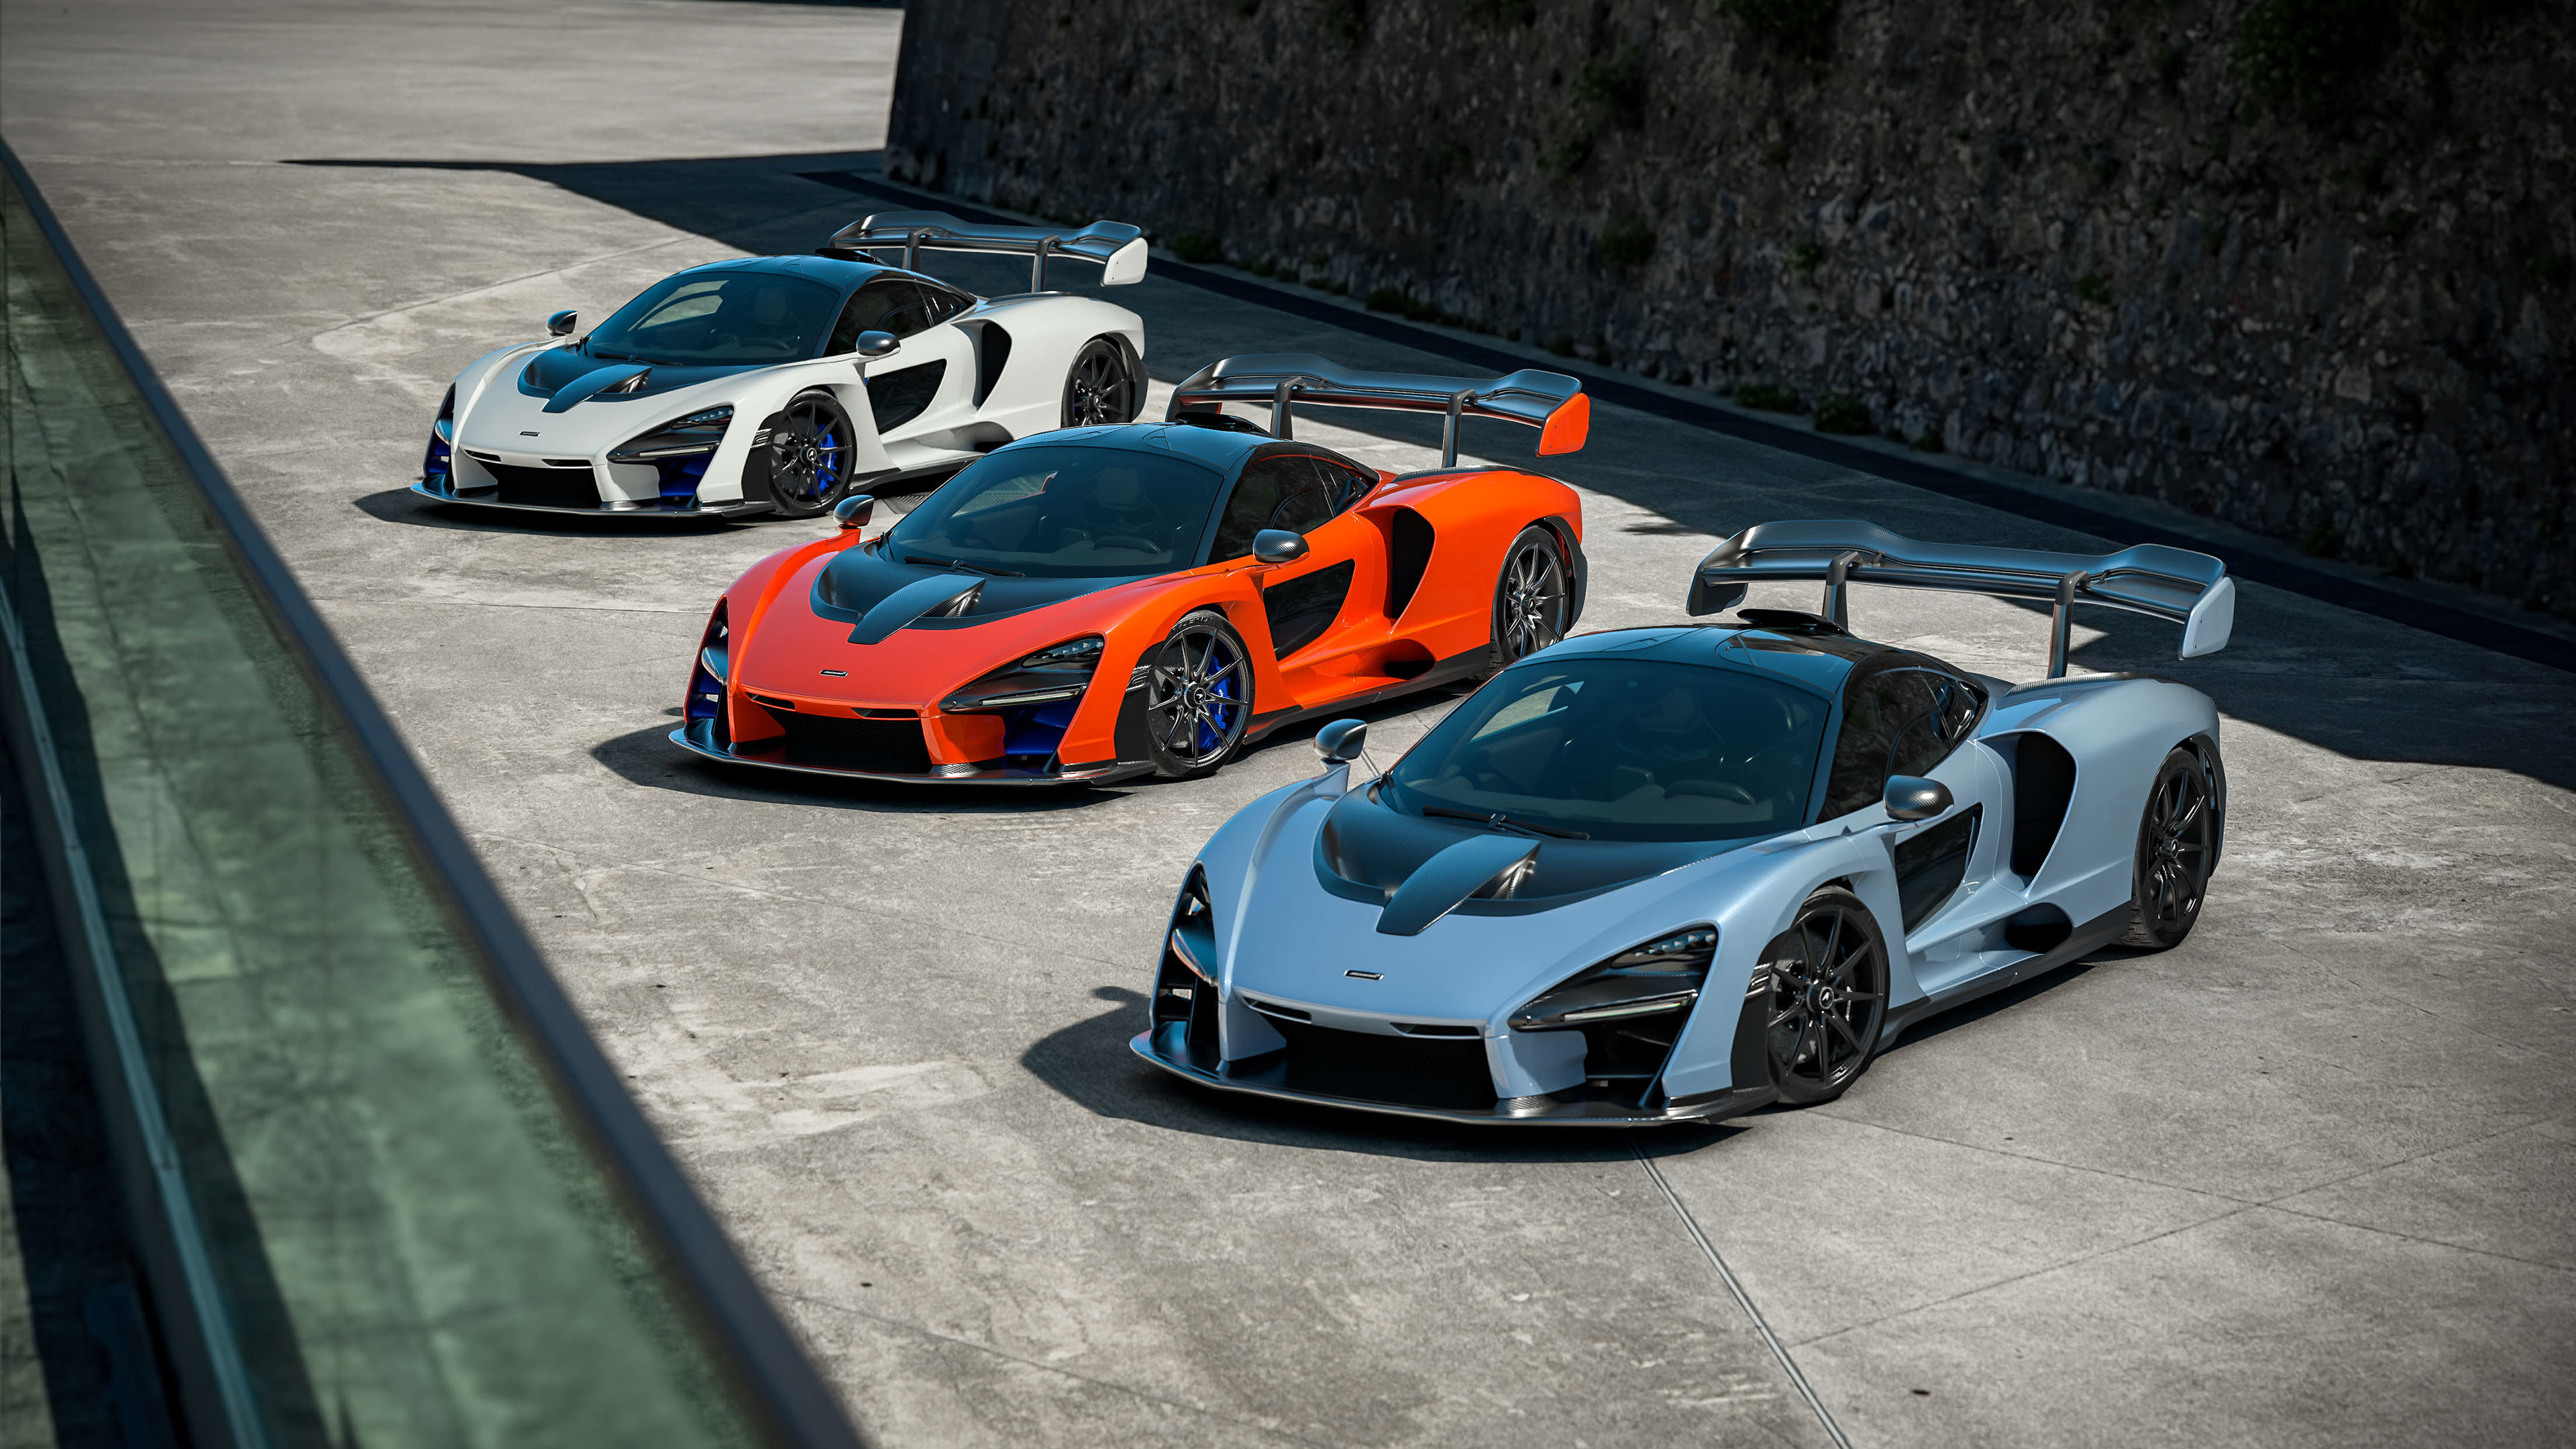 Mclaren Senna New 2019 4k mclaren wallpapers, mclaren ...